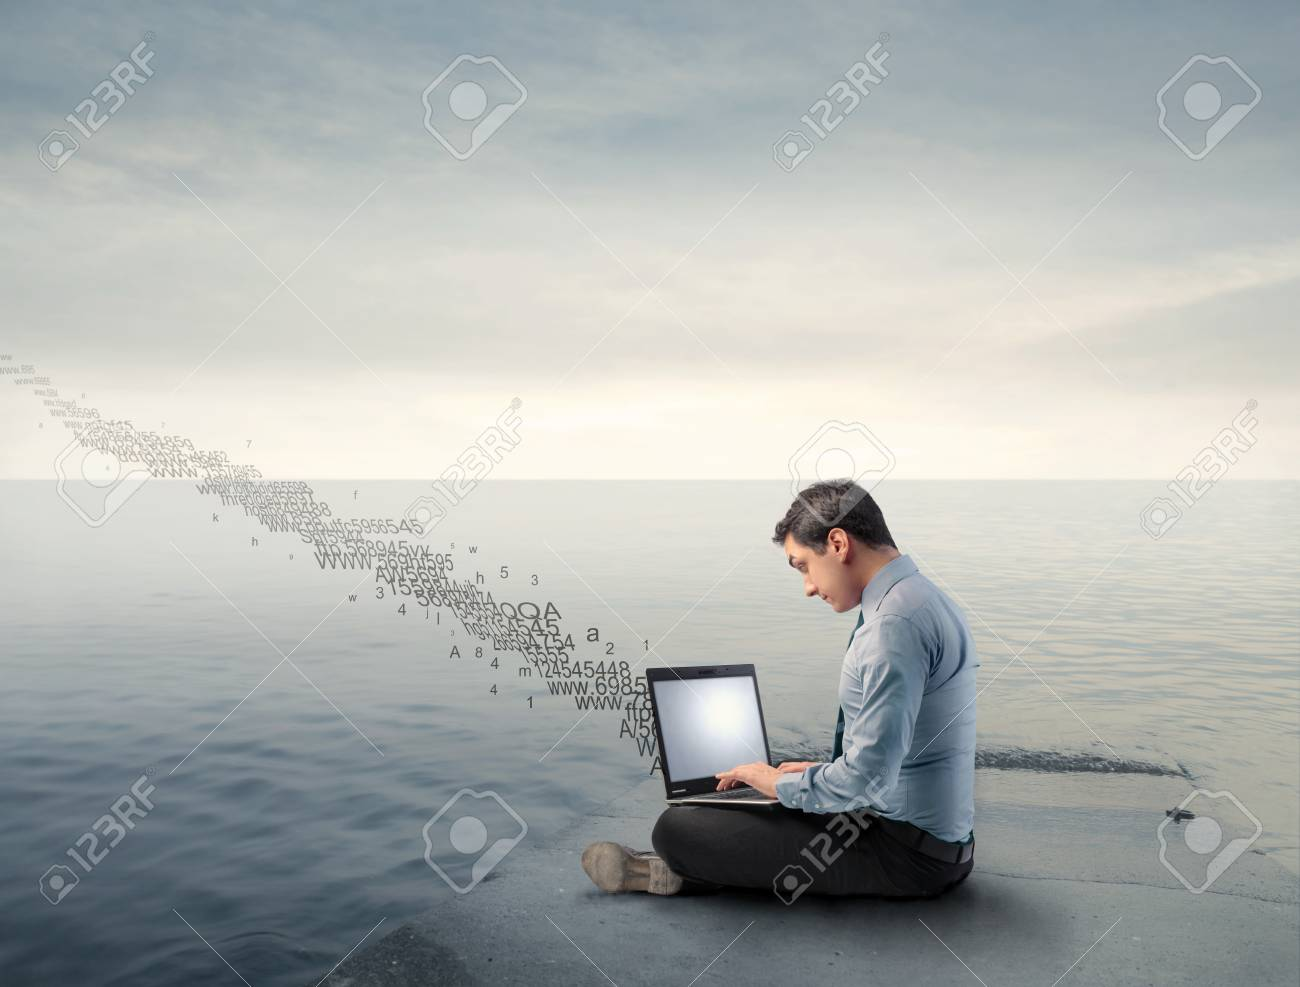 Businessman using a laptop on a wharf with numbers flying away from it Stock Photo - 8999973